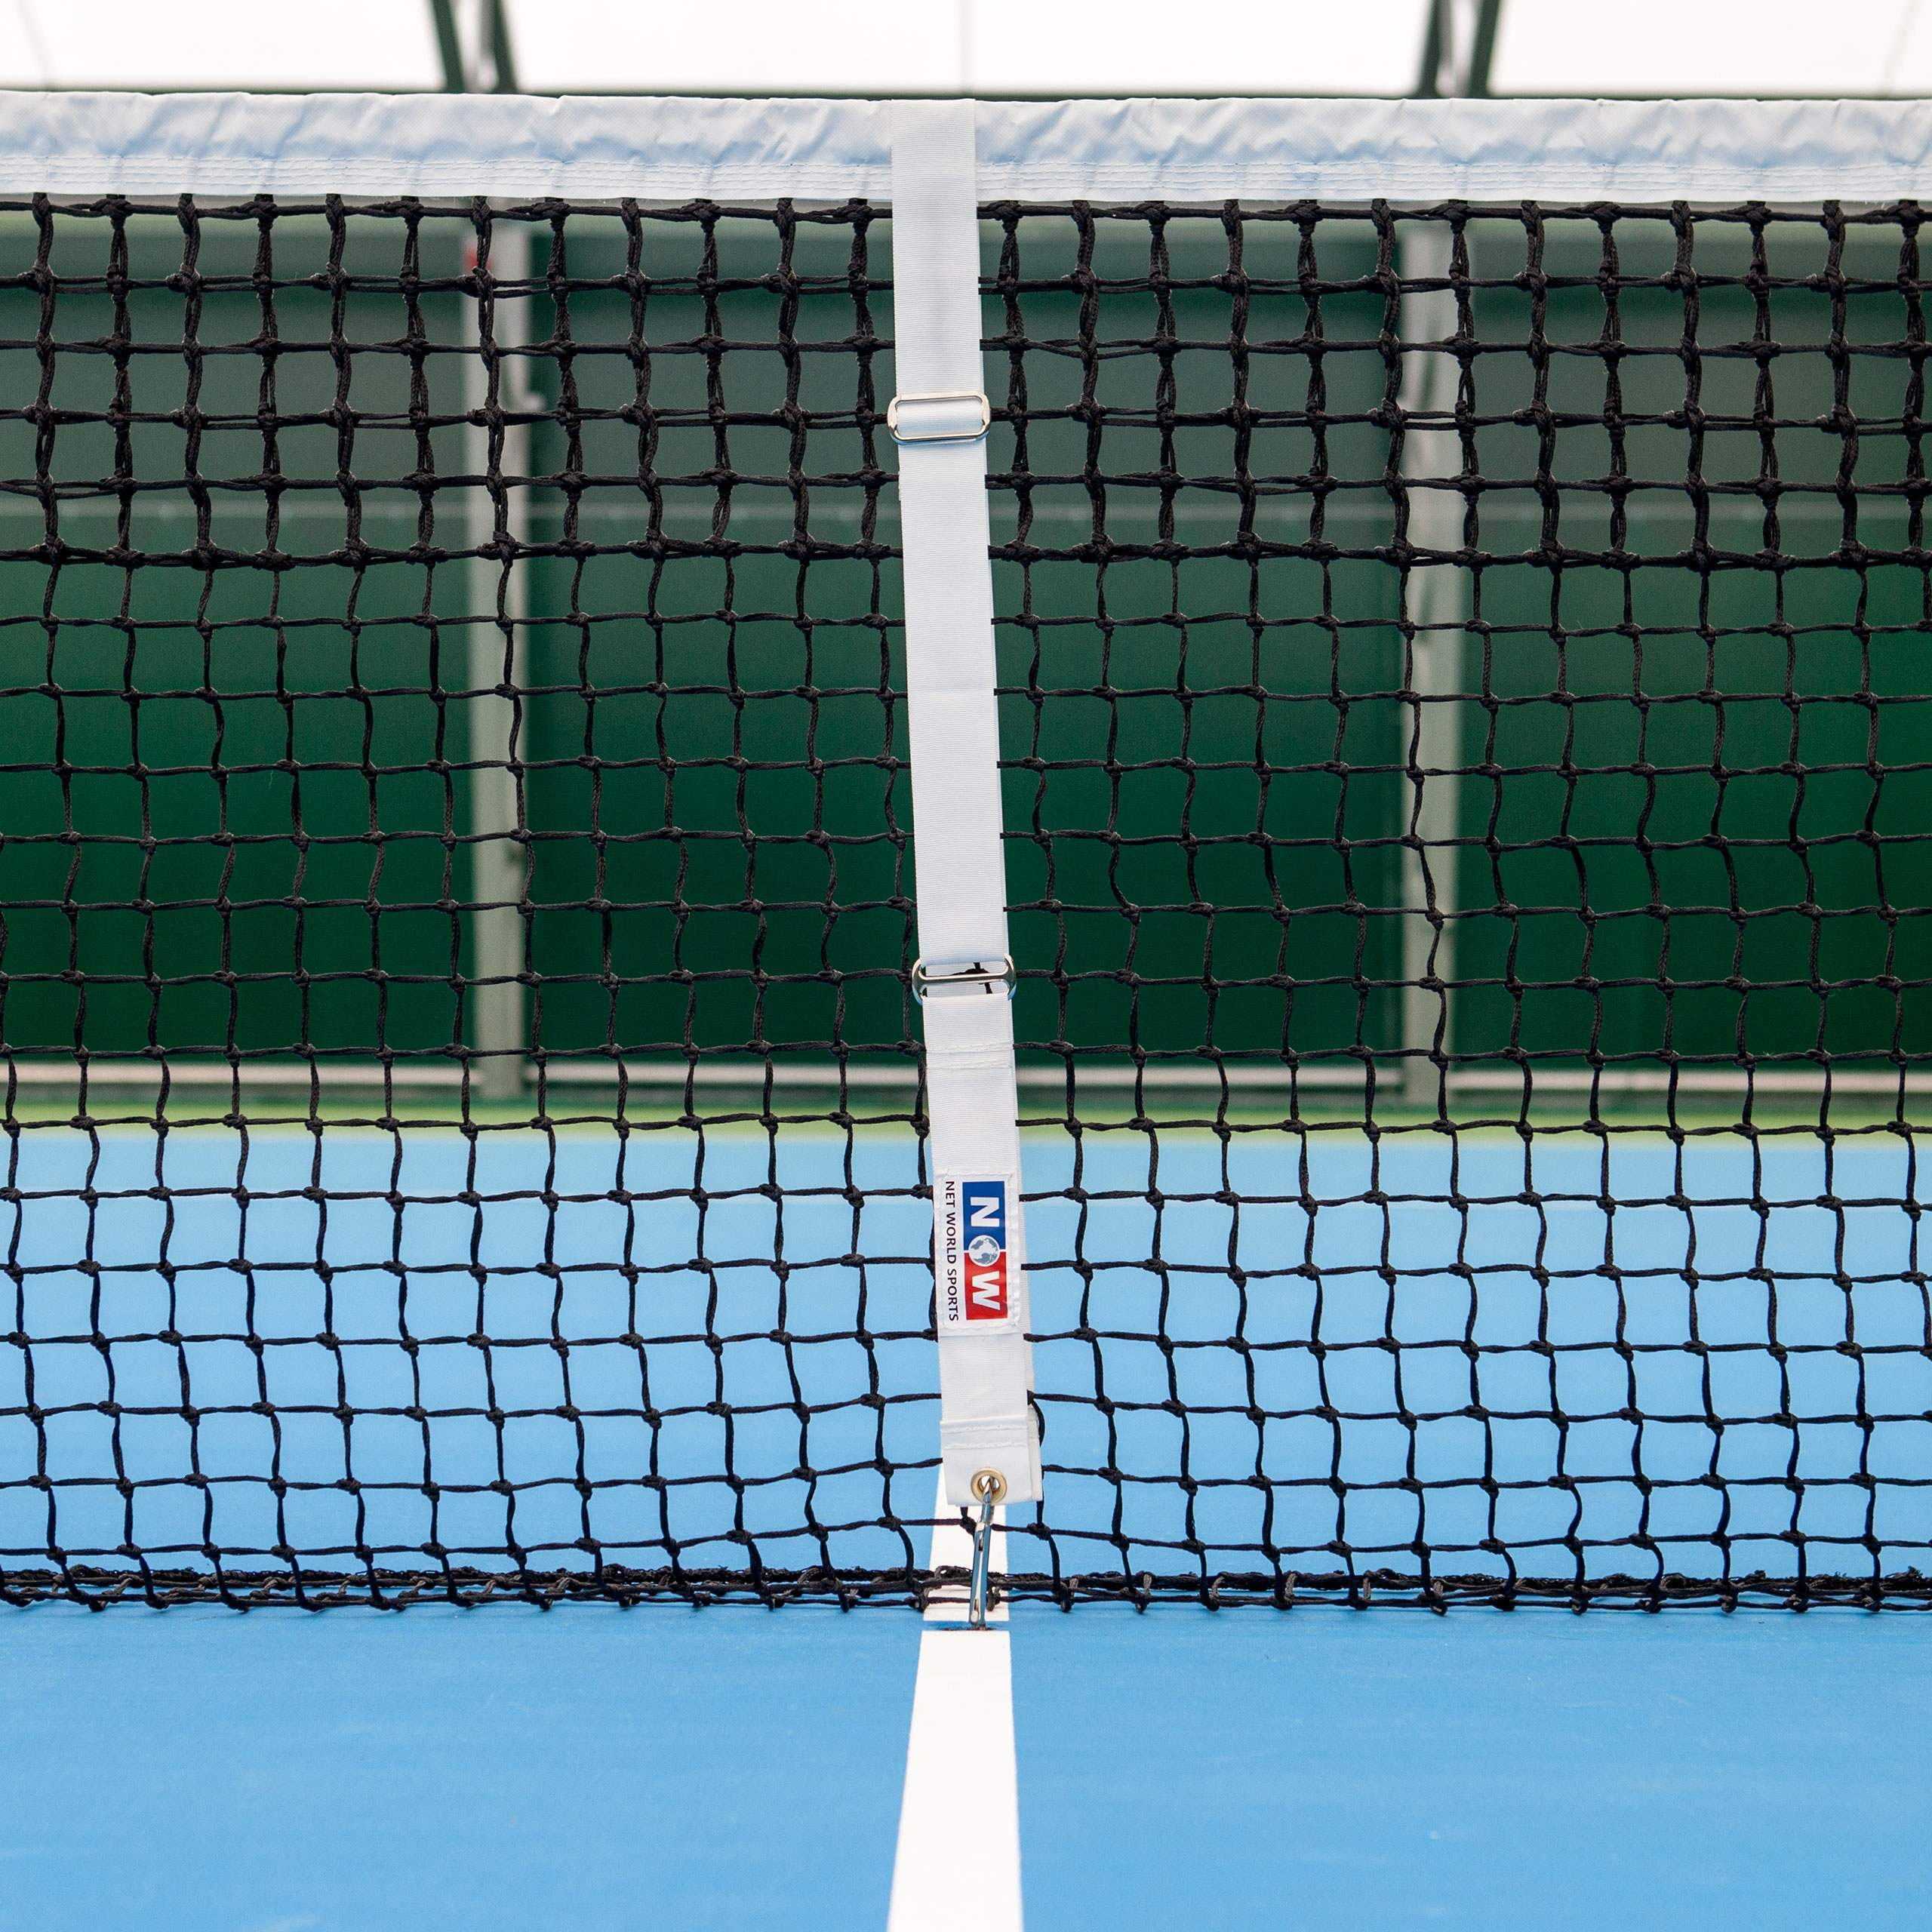 Tennis Net Centre Strap - Net Accessories | Net World Sports